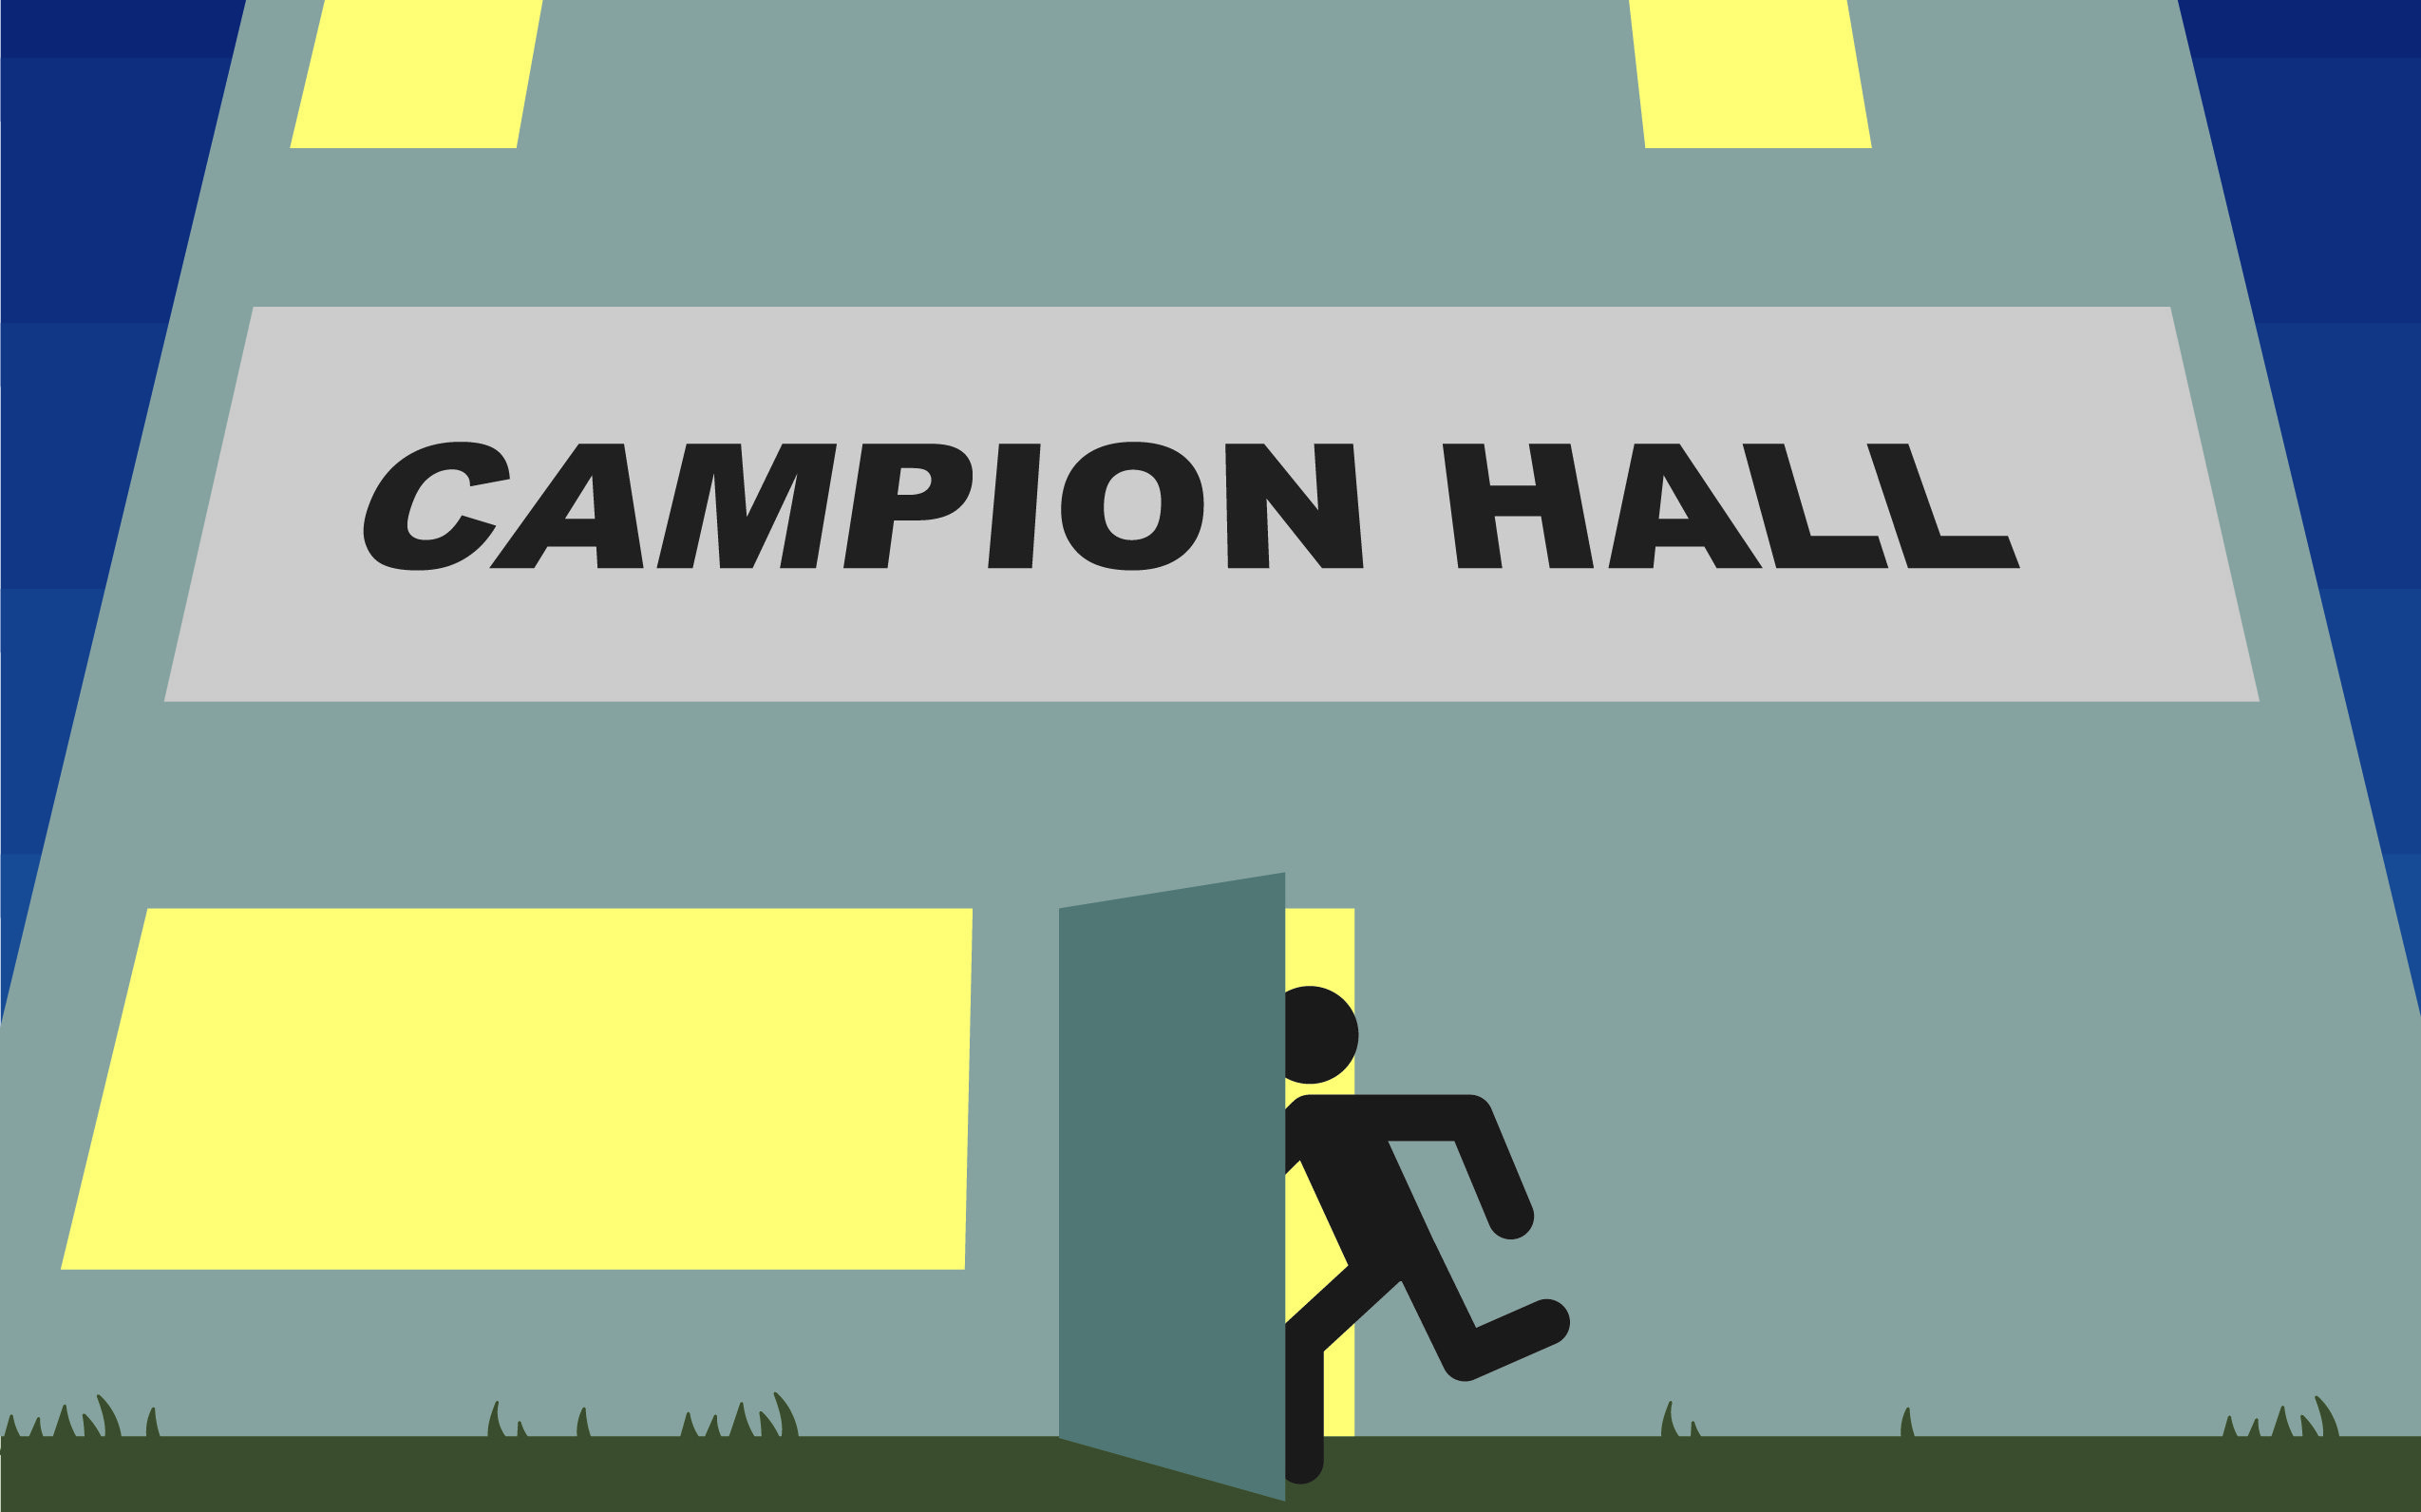 Students Taping Over Doors Facilitated Break-In at Campion Hall